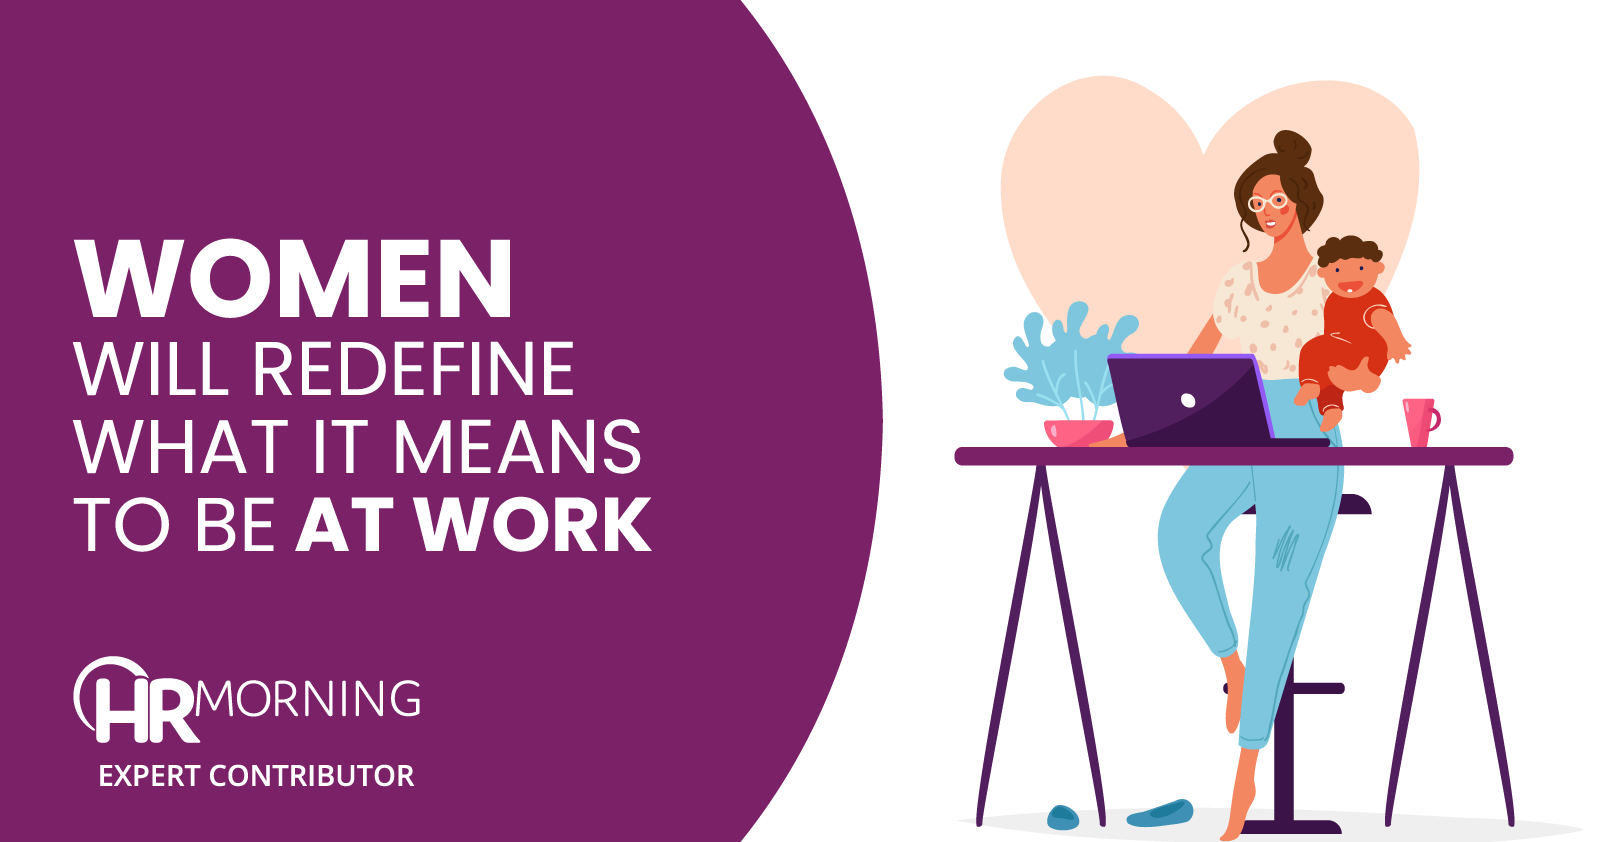 women will redefine what it means to be at work